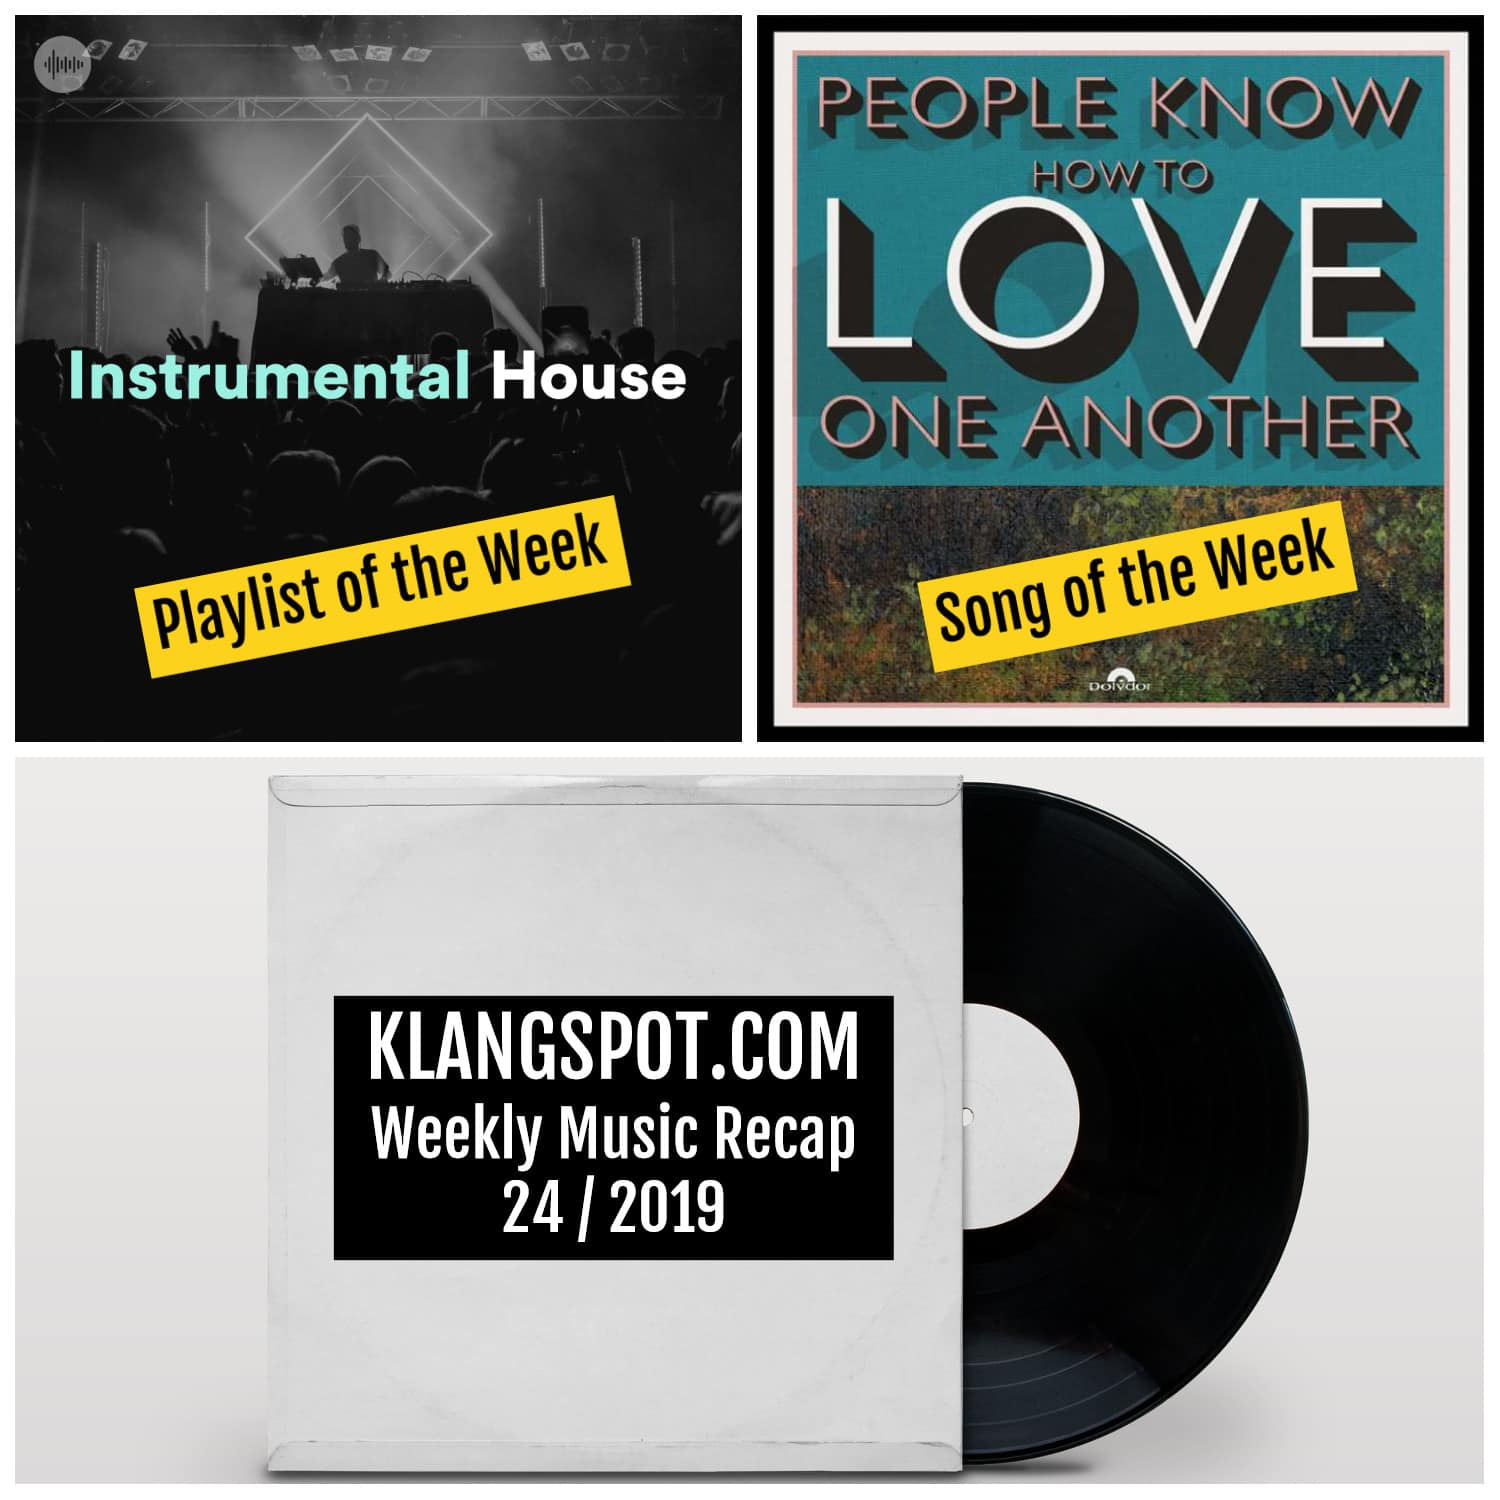 Weekly Music Recap | Week 24/2019: Instrumental House / Kaiser Chiefs - 'People Know How To Love One Another'